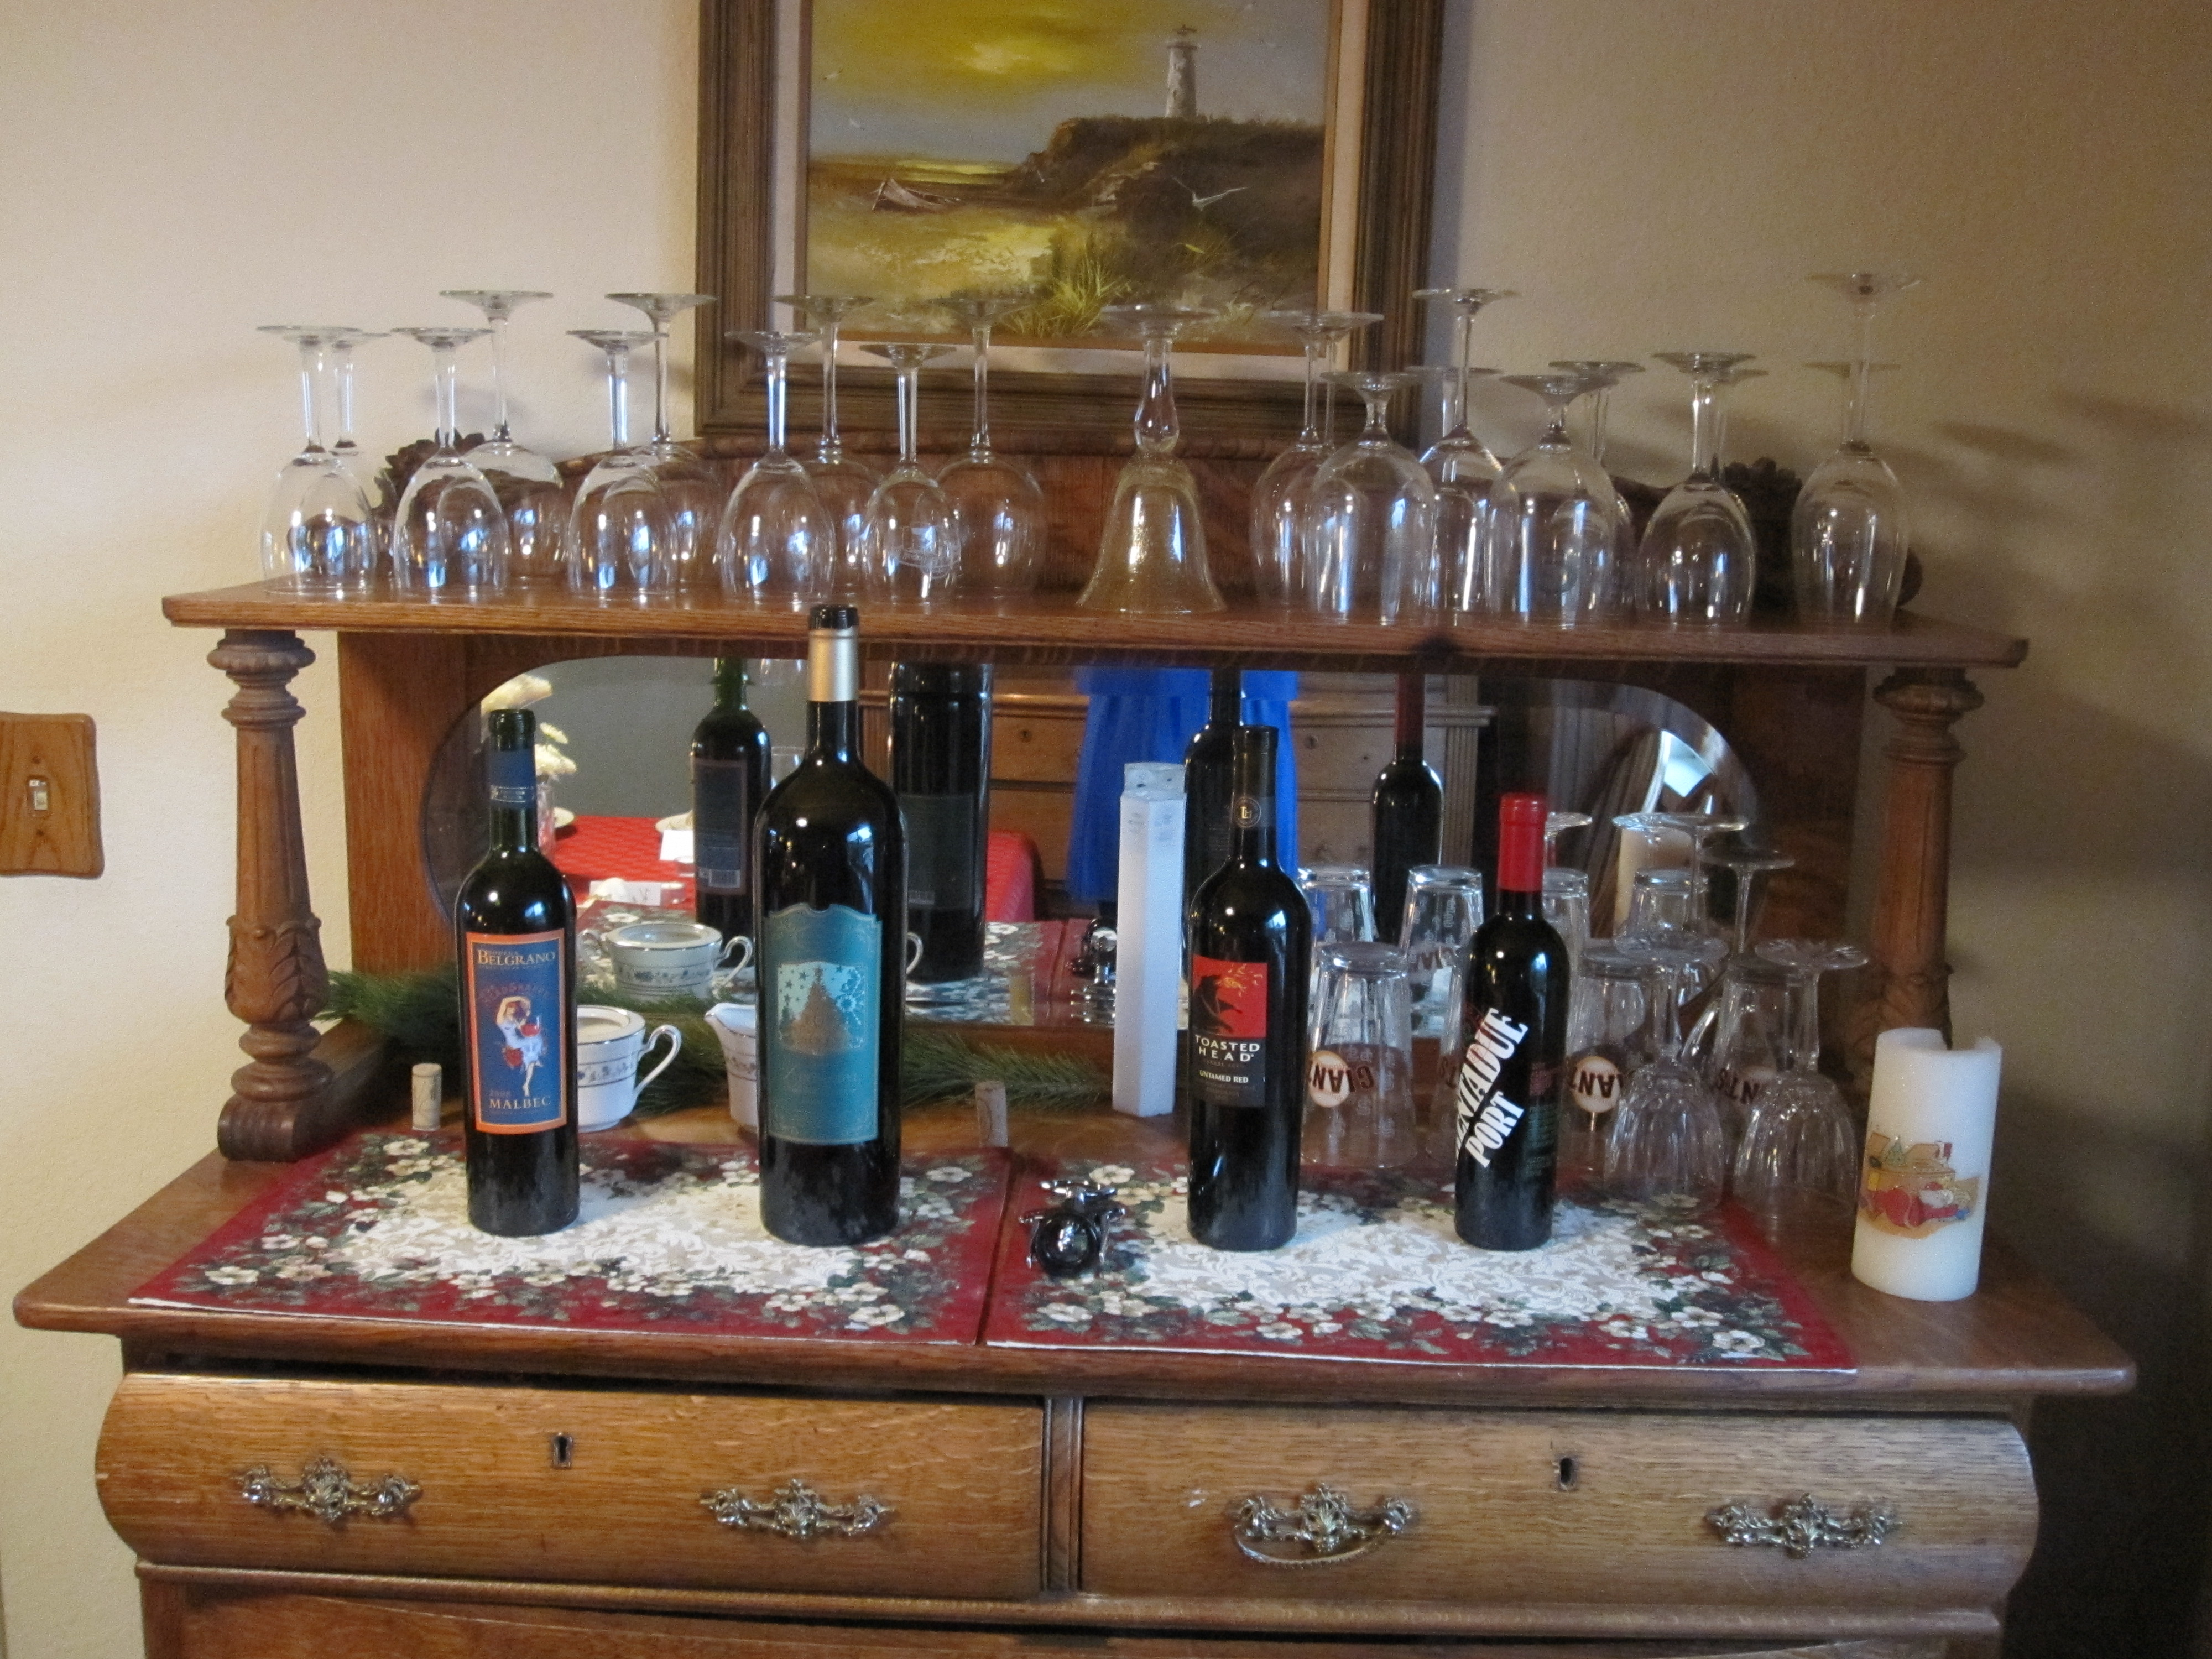 To create a natural flow at our Christmas dinner celebration, we set up stations. This was the red wine station. The white wine, punch, and beer stations were all in different areas of the house.